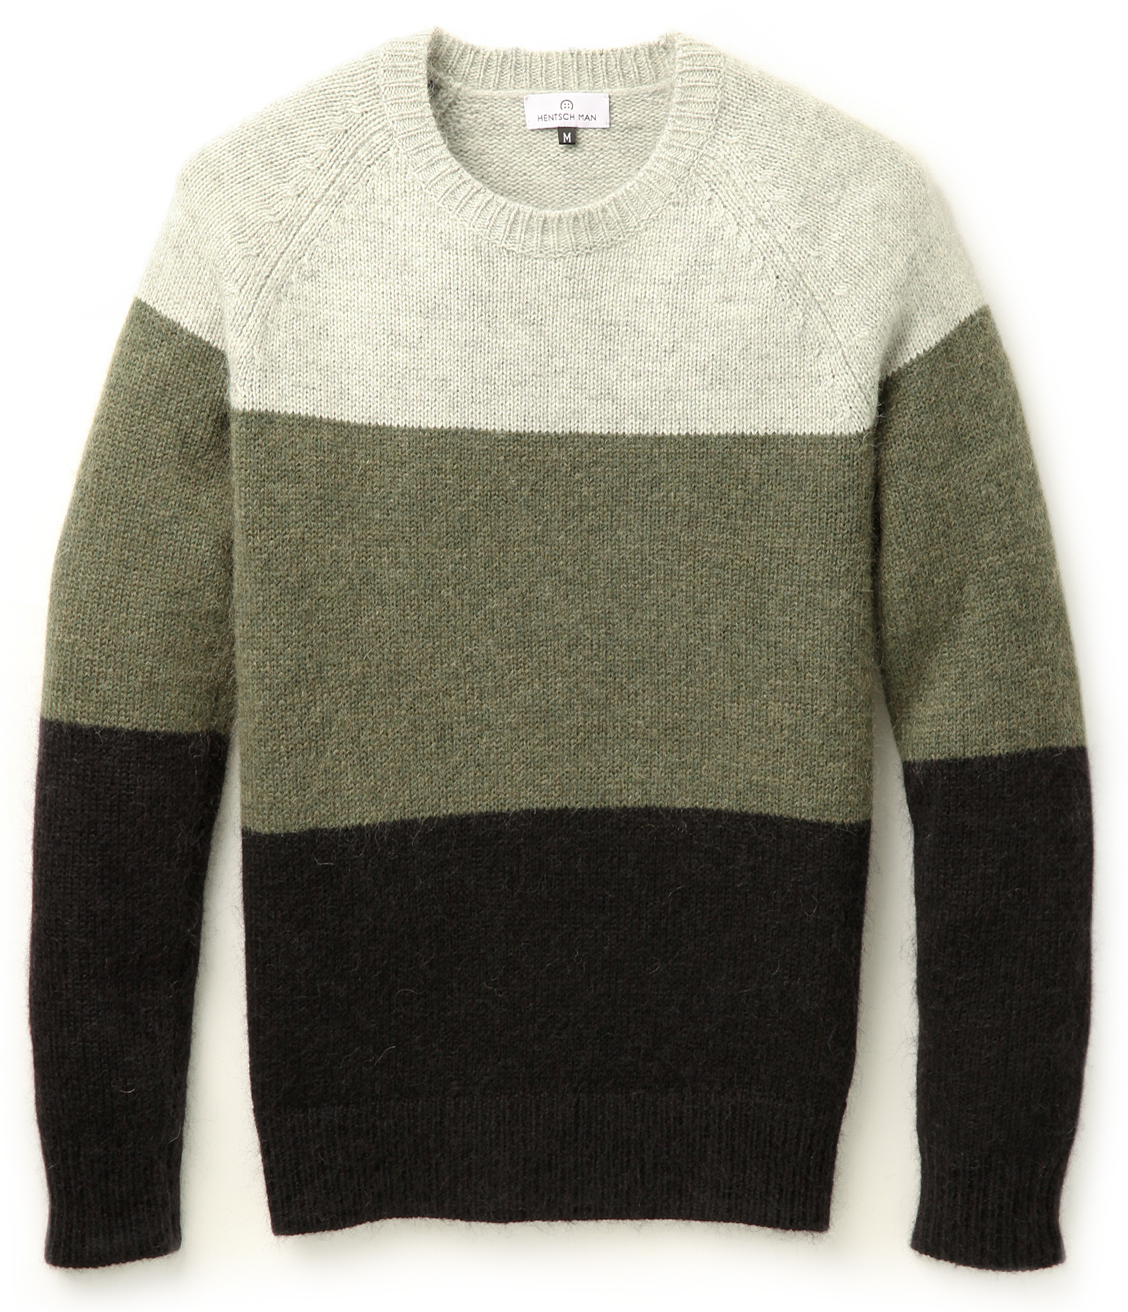 Black Sweater For Men